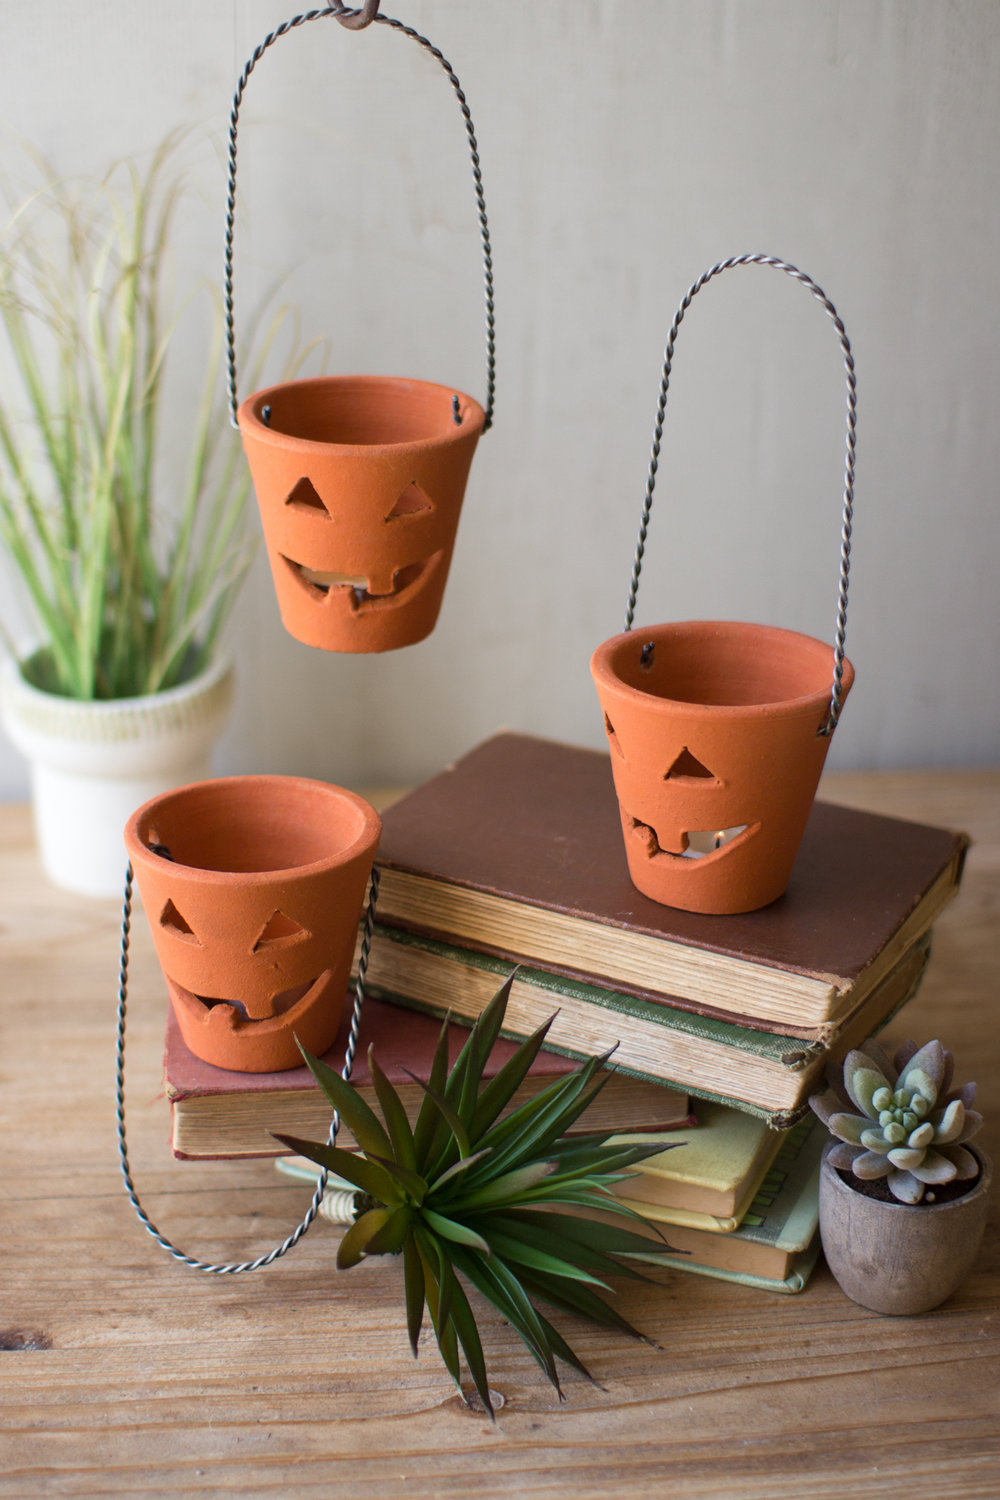 CLAY JACK-o-LANTERN BASKETS $14 each.